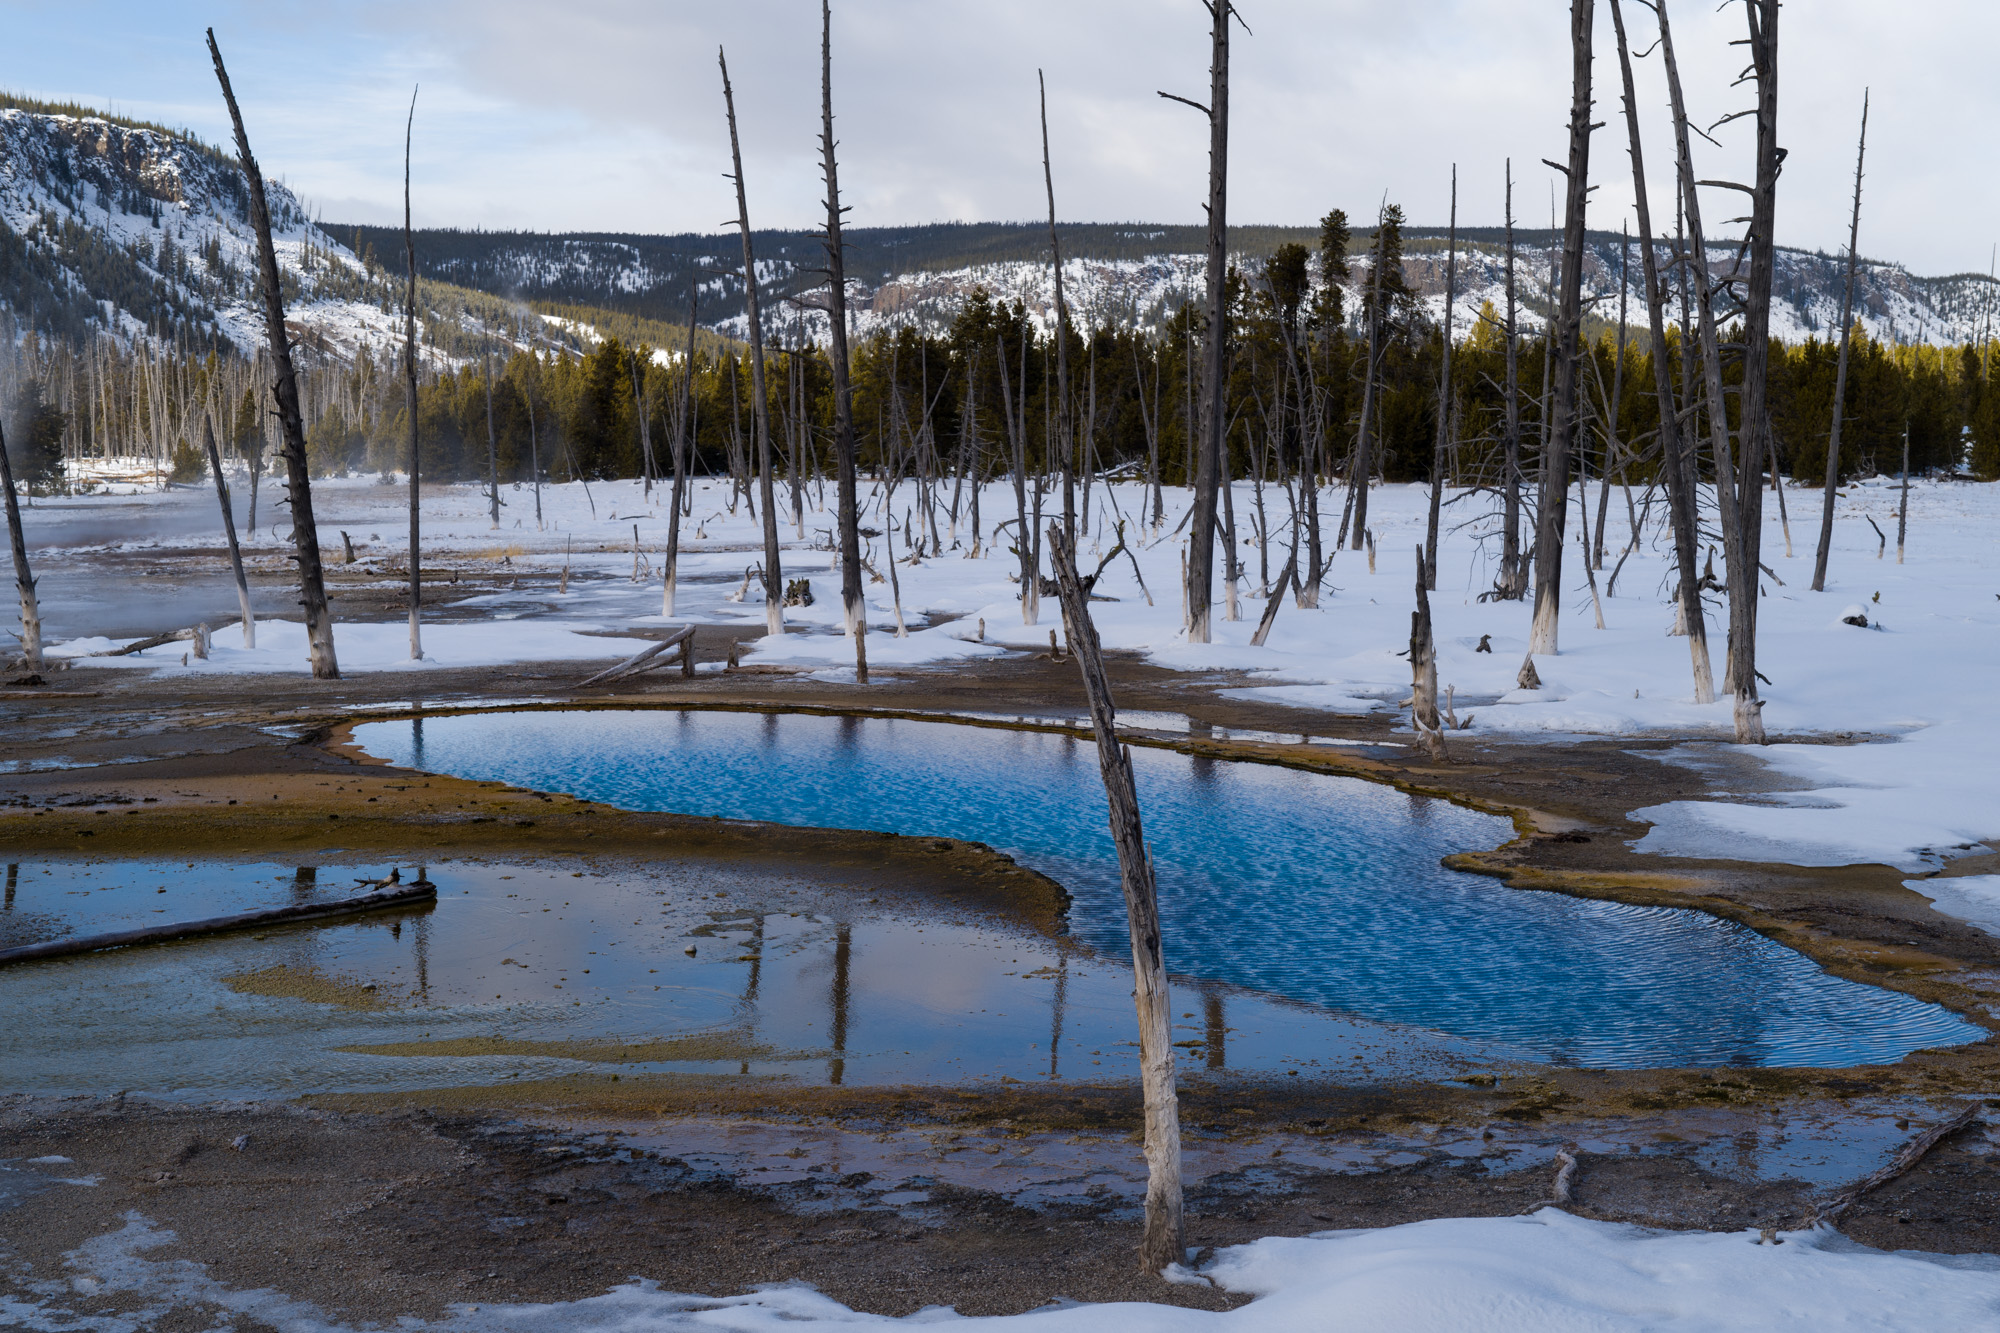 Opalescent Pool in the Black Sand Basin